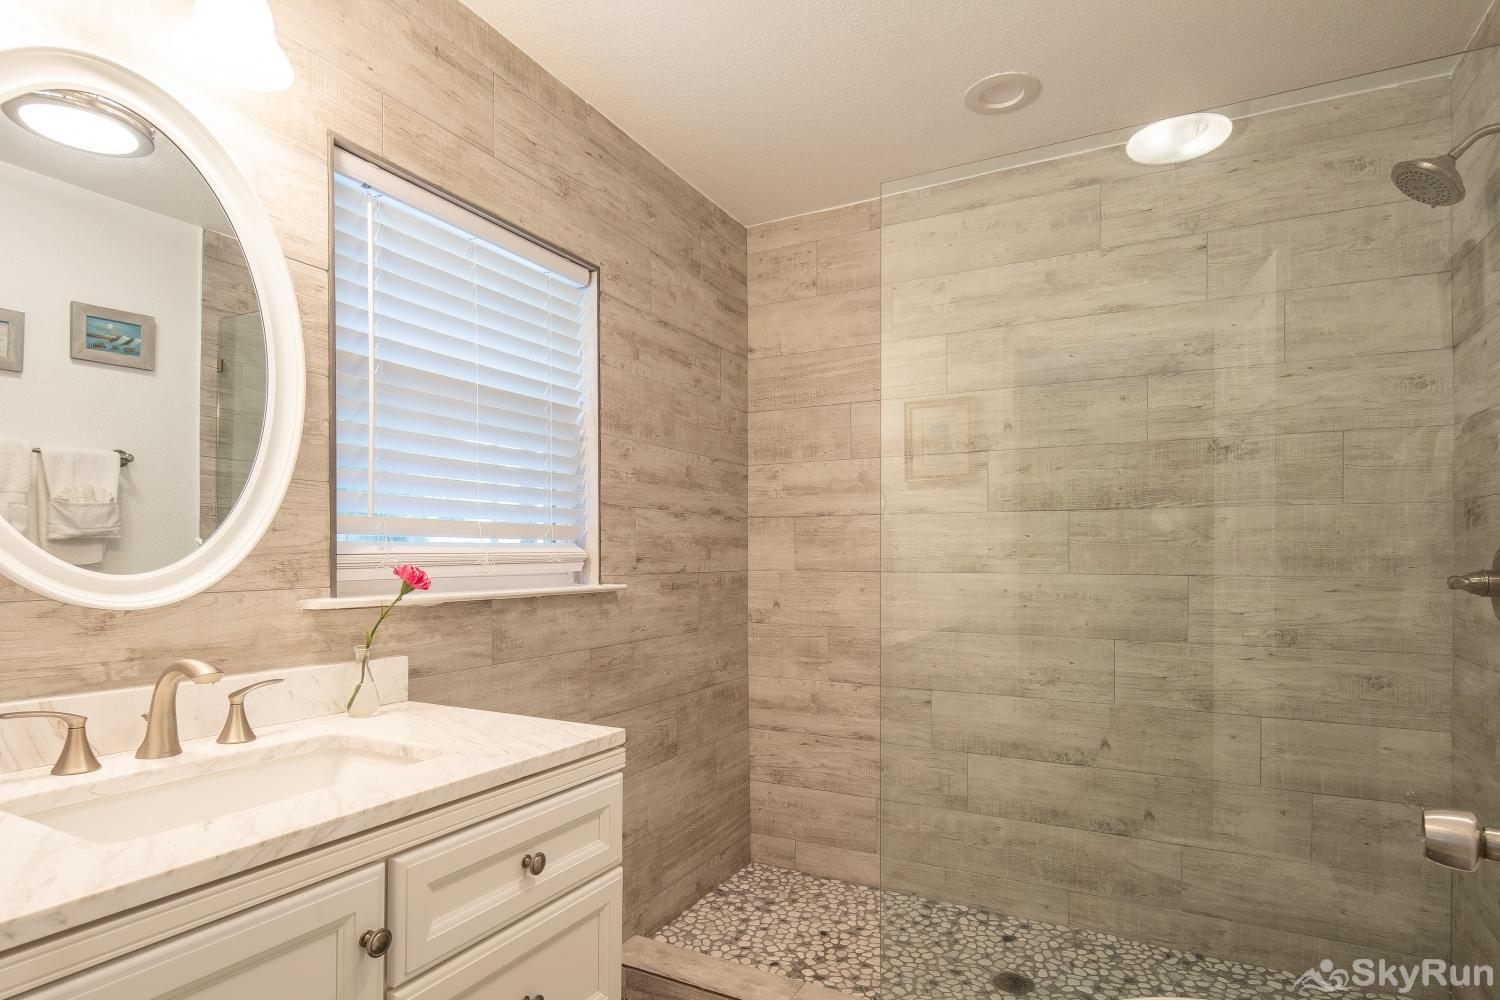 LAKESHORE ESCAPE Second full bathroom with new tiled, walk- in shower